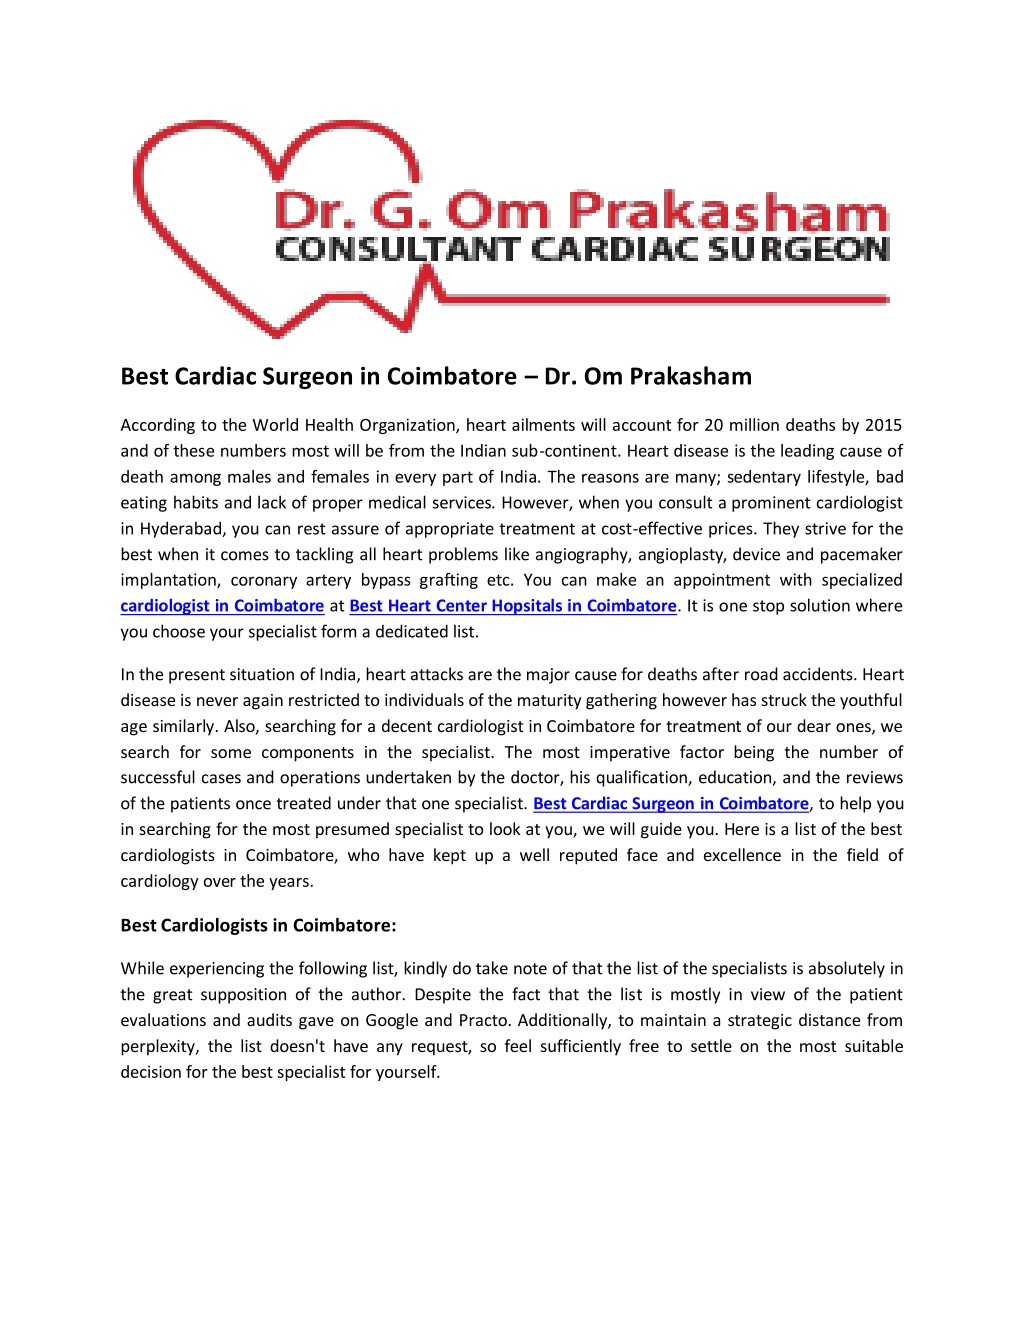 Ppt Best Cardiac Surgeon In Coimbatore A Dr Om Prakasham Powerpoint Presentation Id 7912905